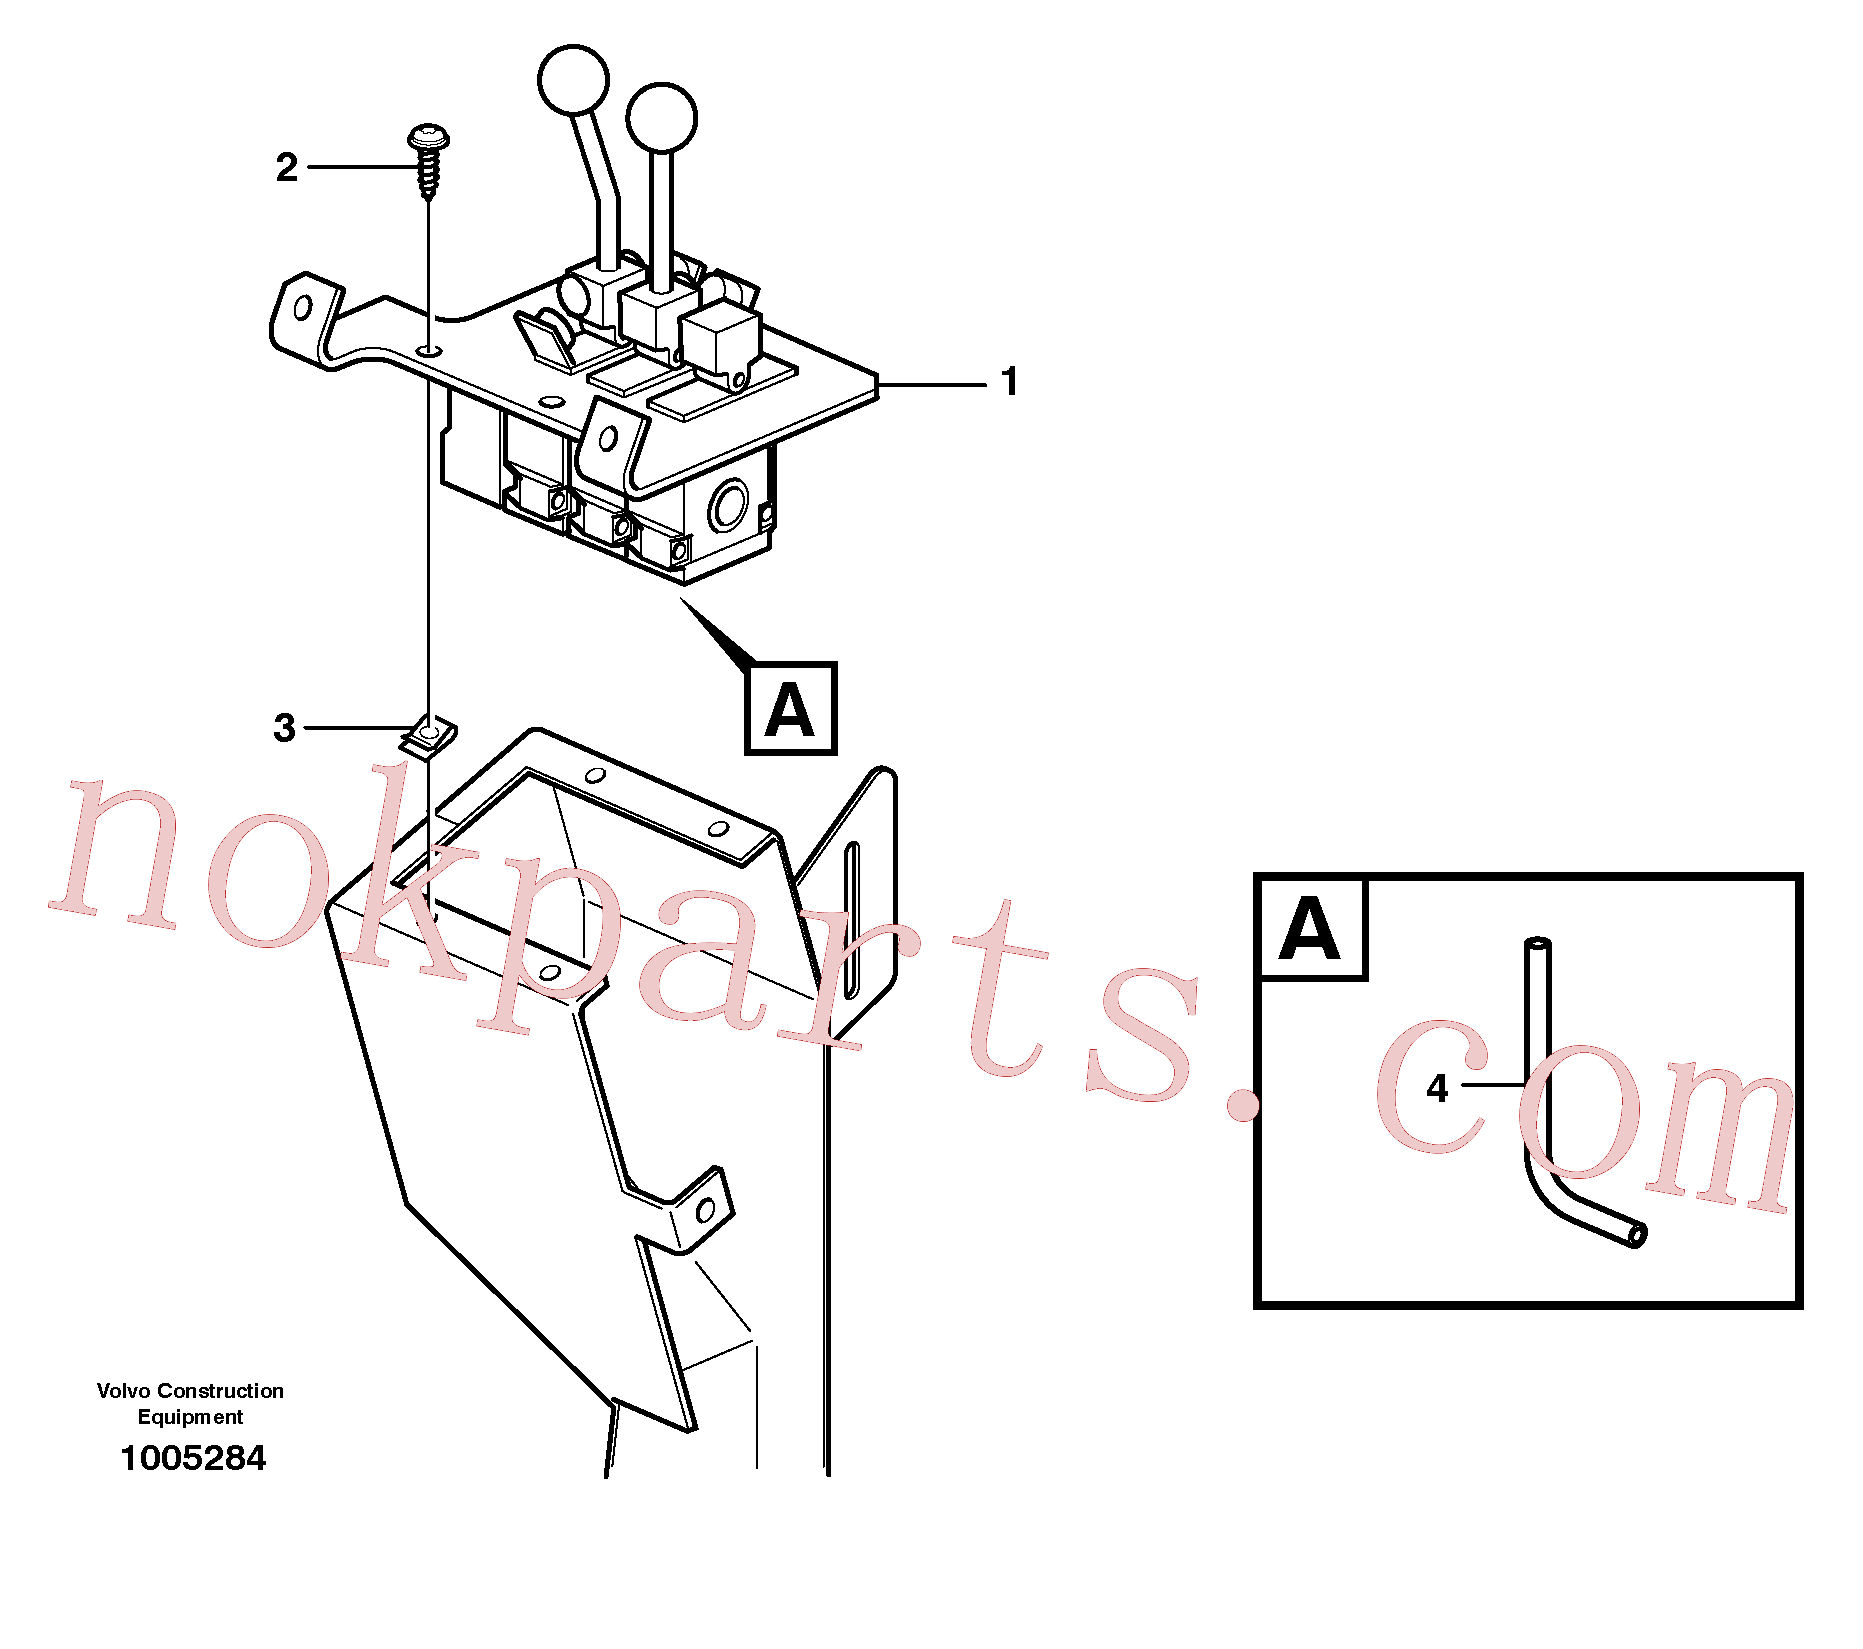 VOE943369 for Volvo Servo valve with fitting parts(1005284 assembly)